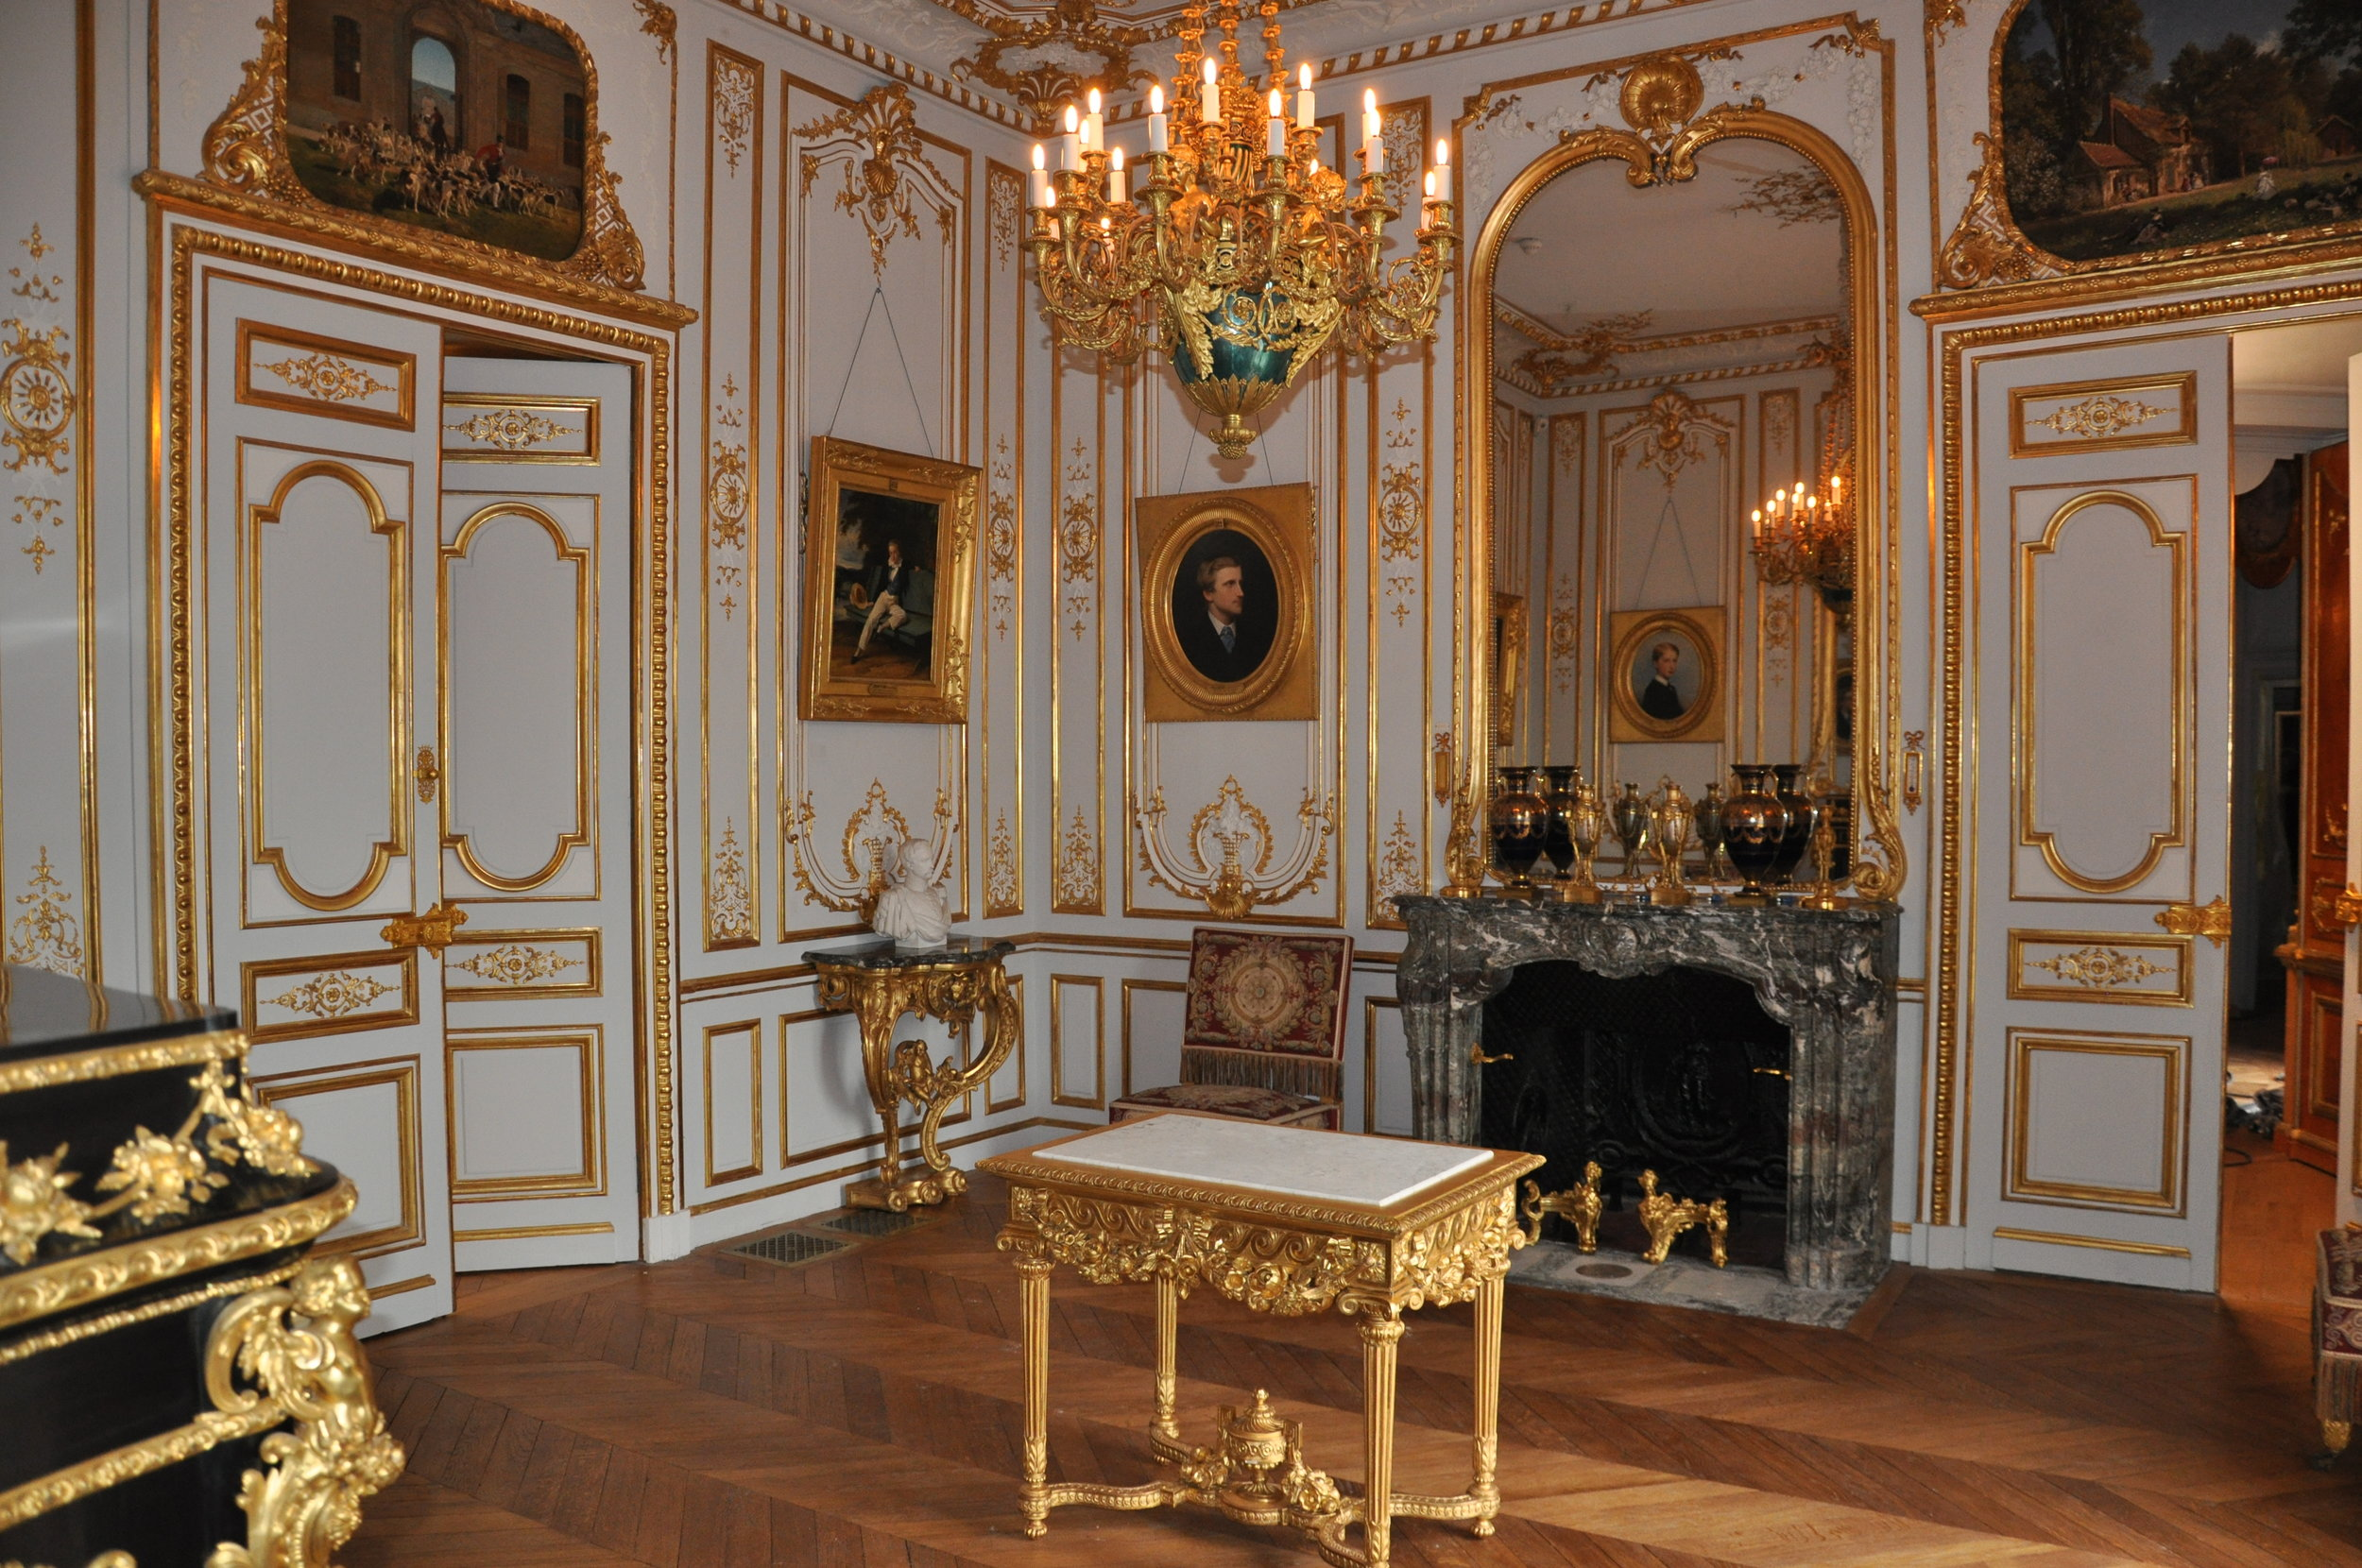 The Salon de Guise © Grand Palais Domaine de Chantilly Also called the ' Salon des Dames ' (Ladies' Salon), this antechamber was renamed ' Salon de Guise ' in memory of the youngest son of the ducal couple, François of Orléans, Duke of Guise, who died in 1872. Combining the Louis XV and Louis XVI styles, the woodworks had been inspired by those of the Grand Apartments.